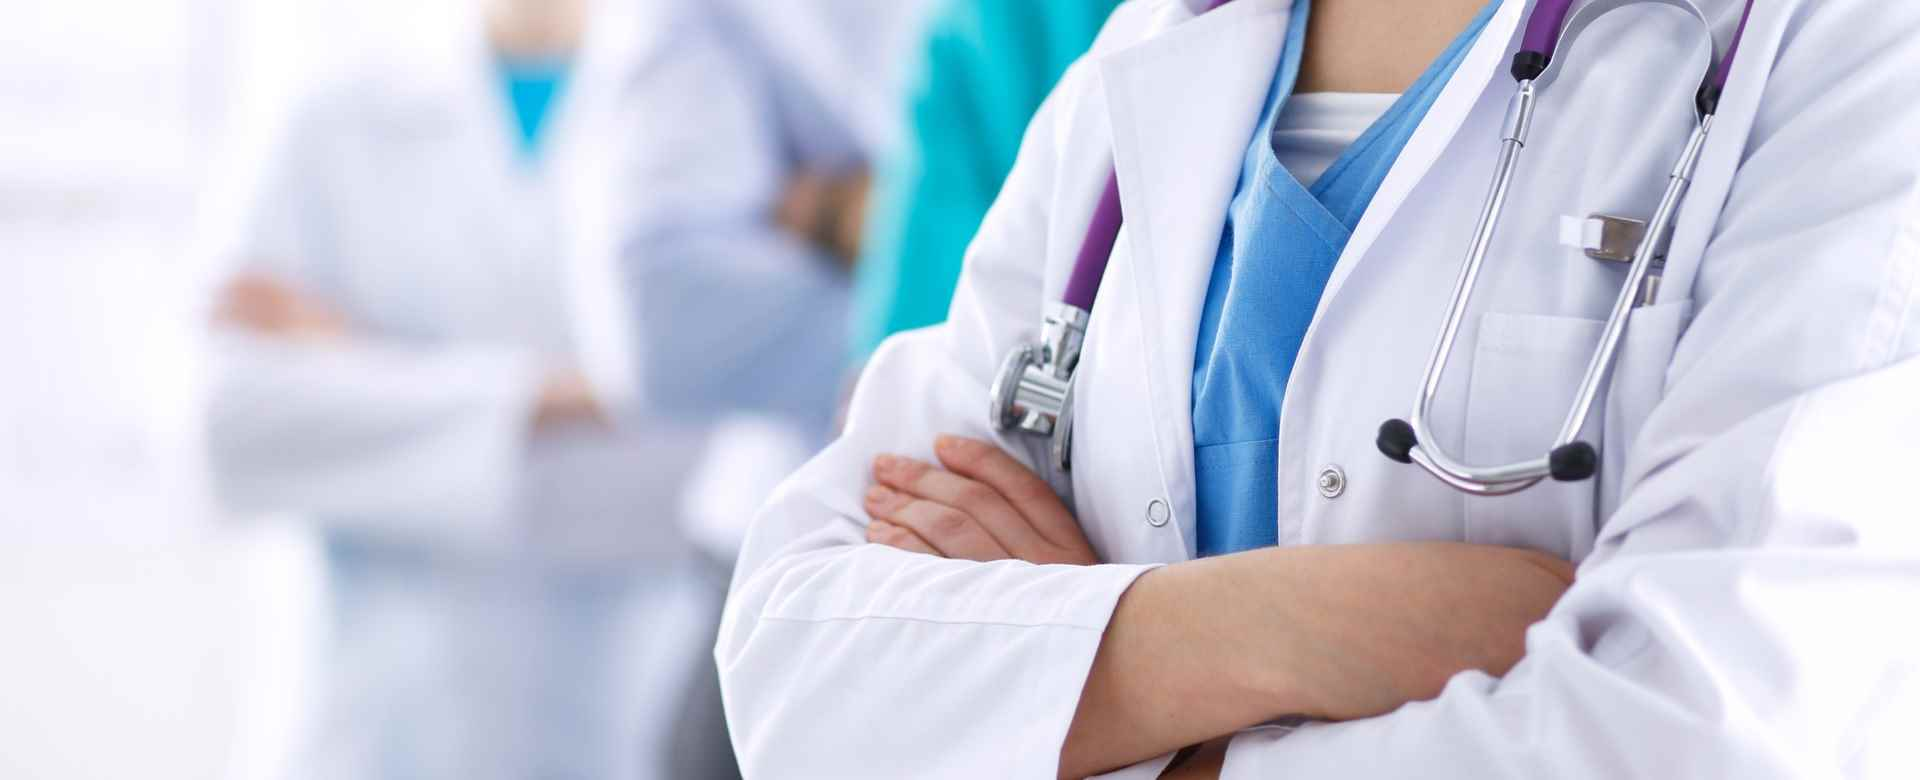 Healthcare in Rural America: Improving Provider Shortages